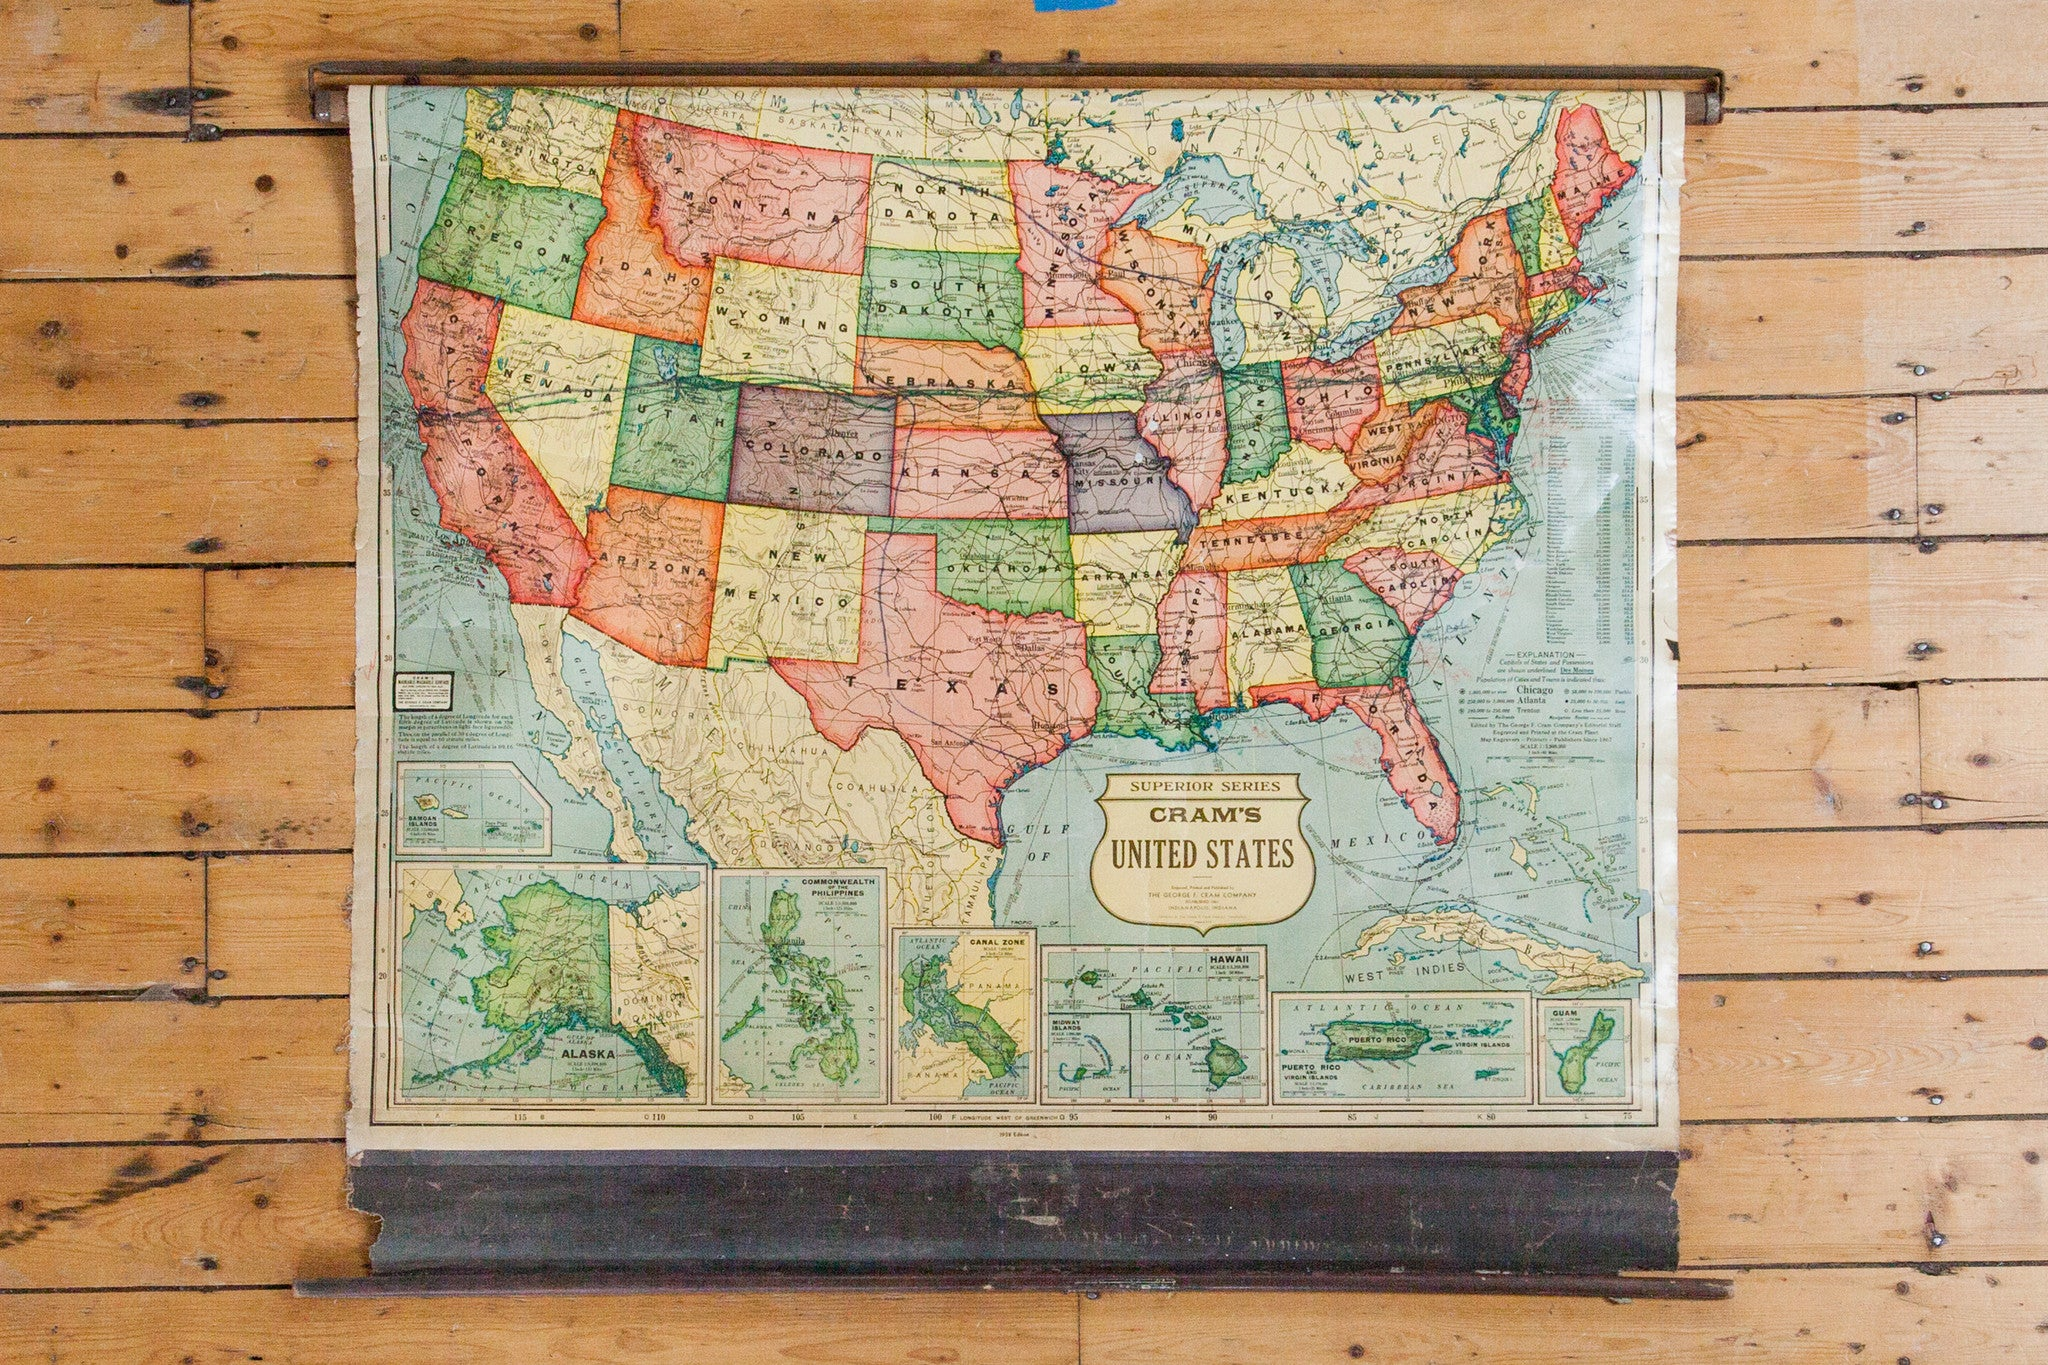 Vintage Pull Down Map Vintage Cram's Pull Down Map of the United States Vintage Pull Down Map